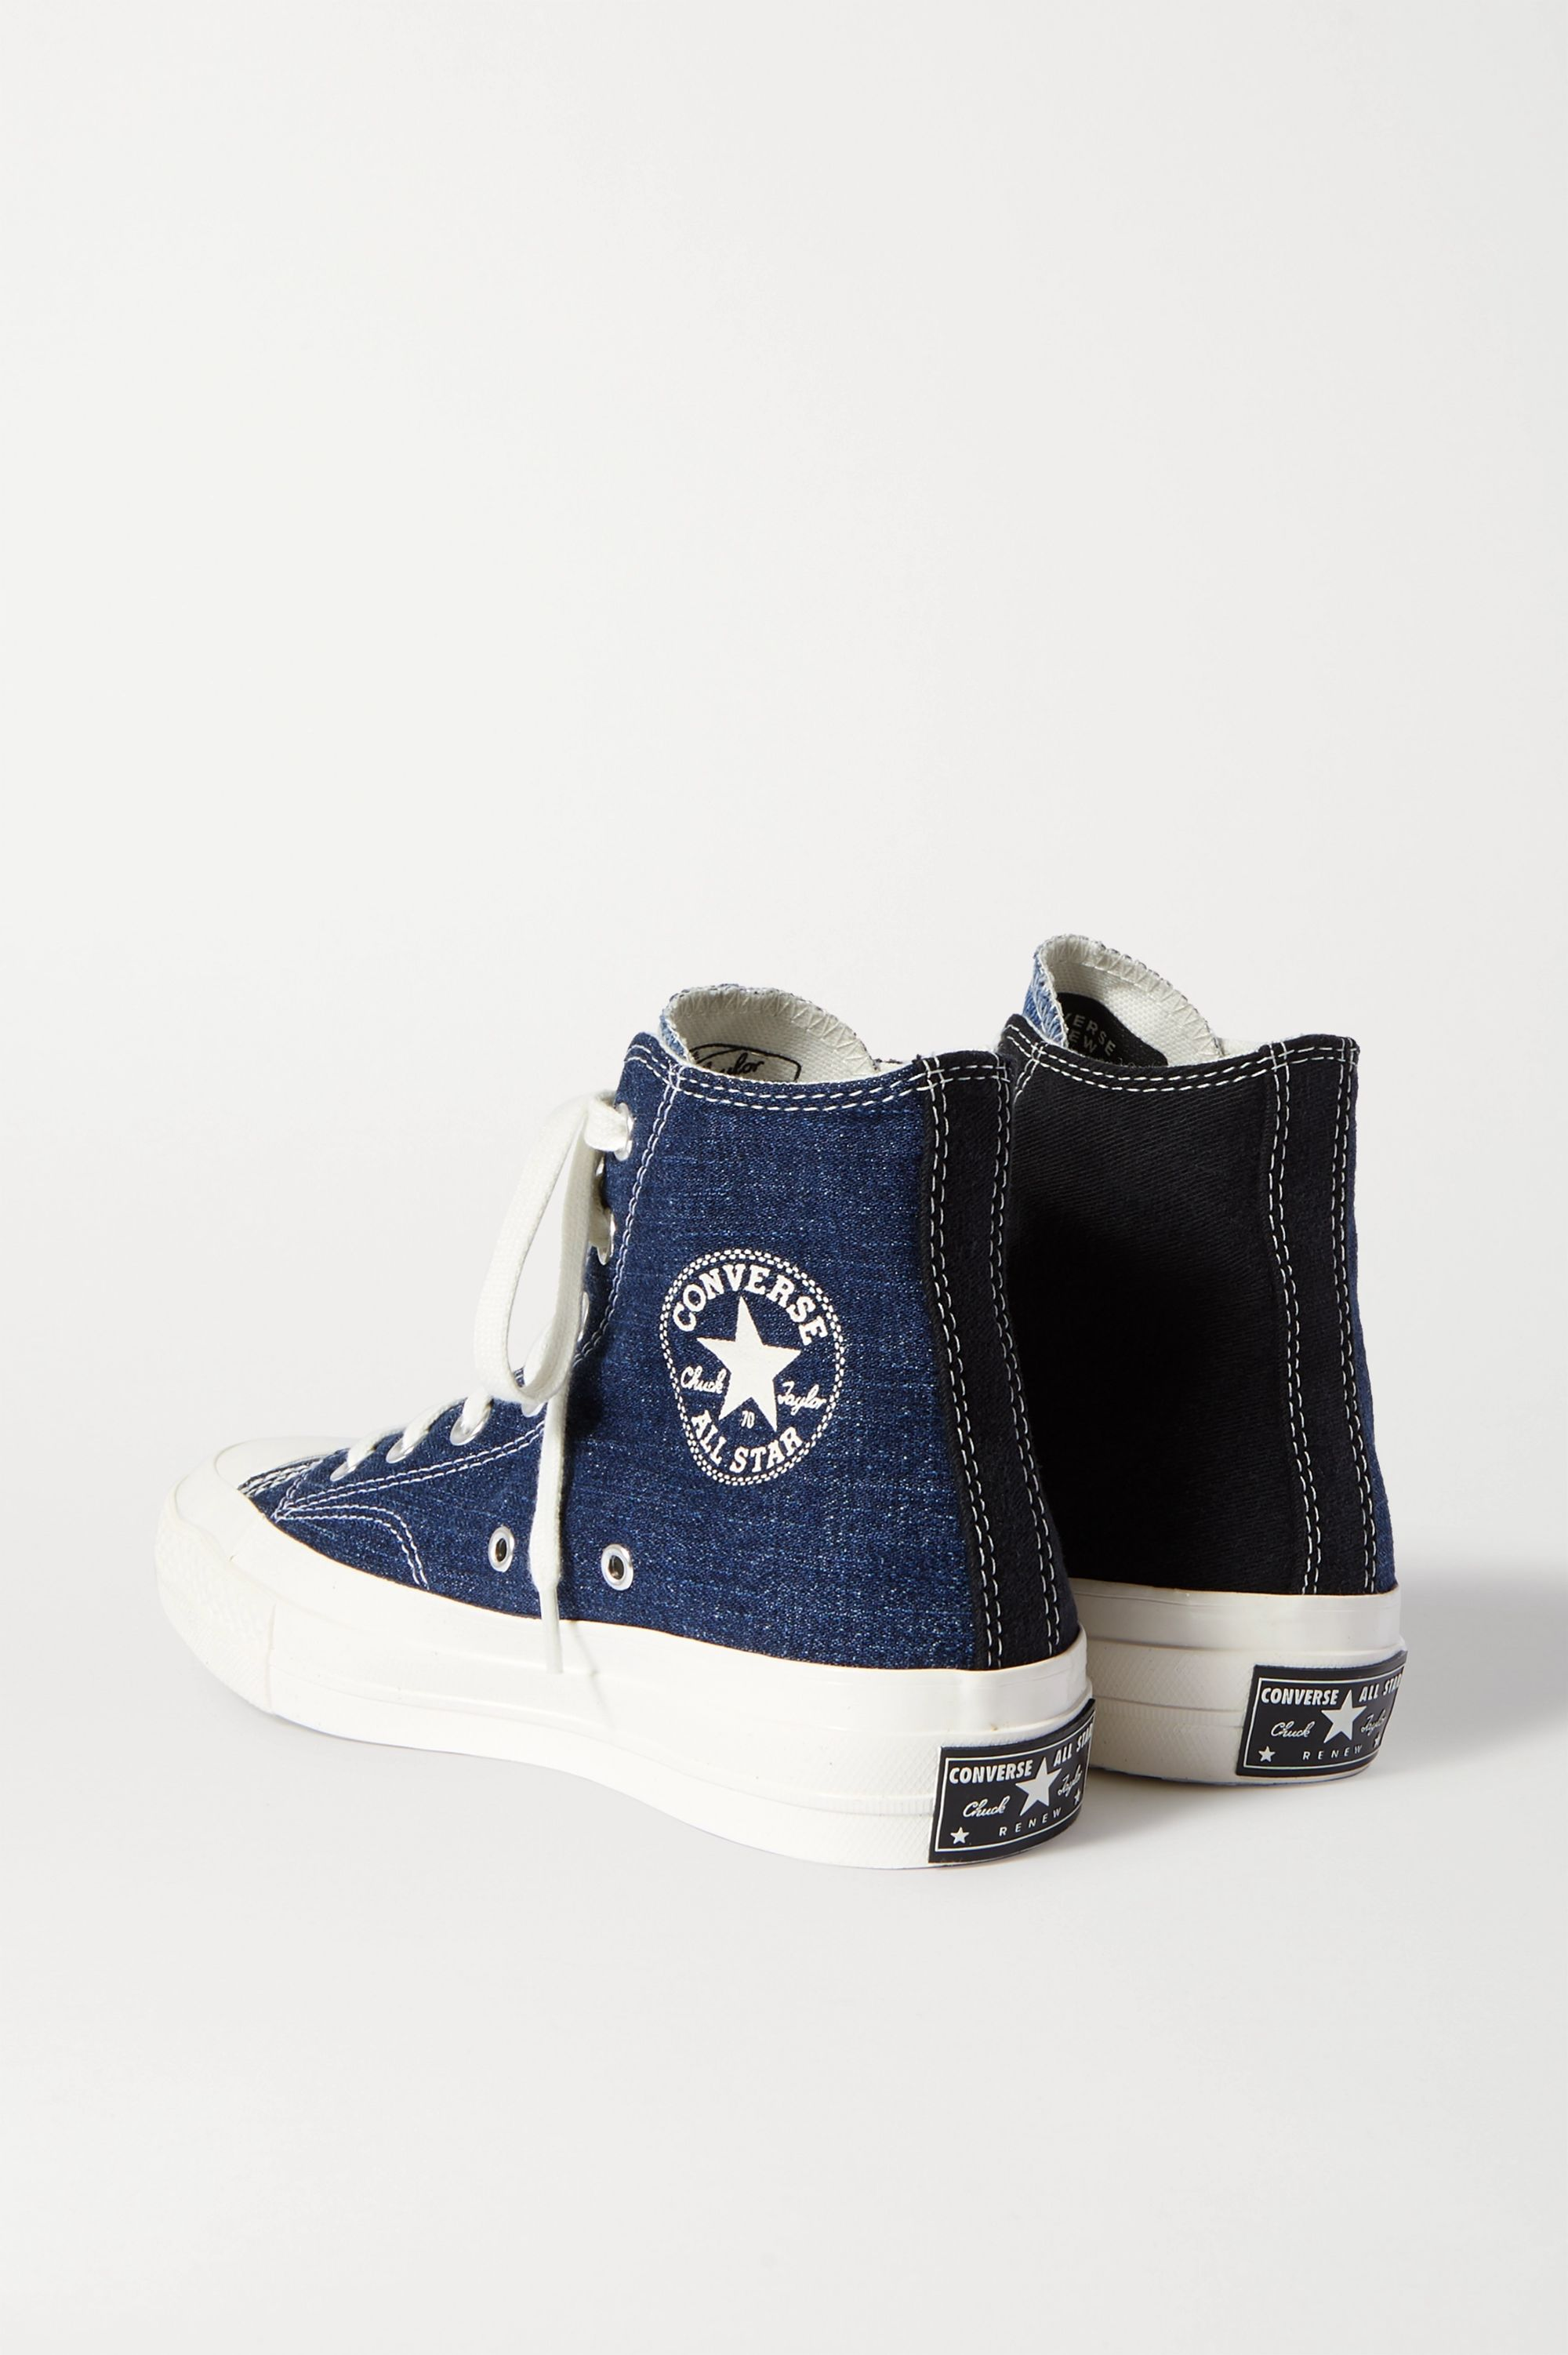 Converse Chuck Taylor All Star 70 two-tone denim high-top sneakers